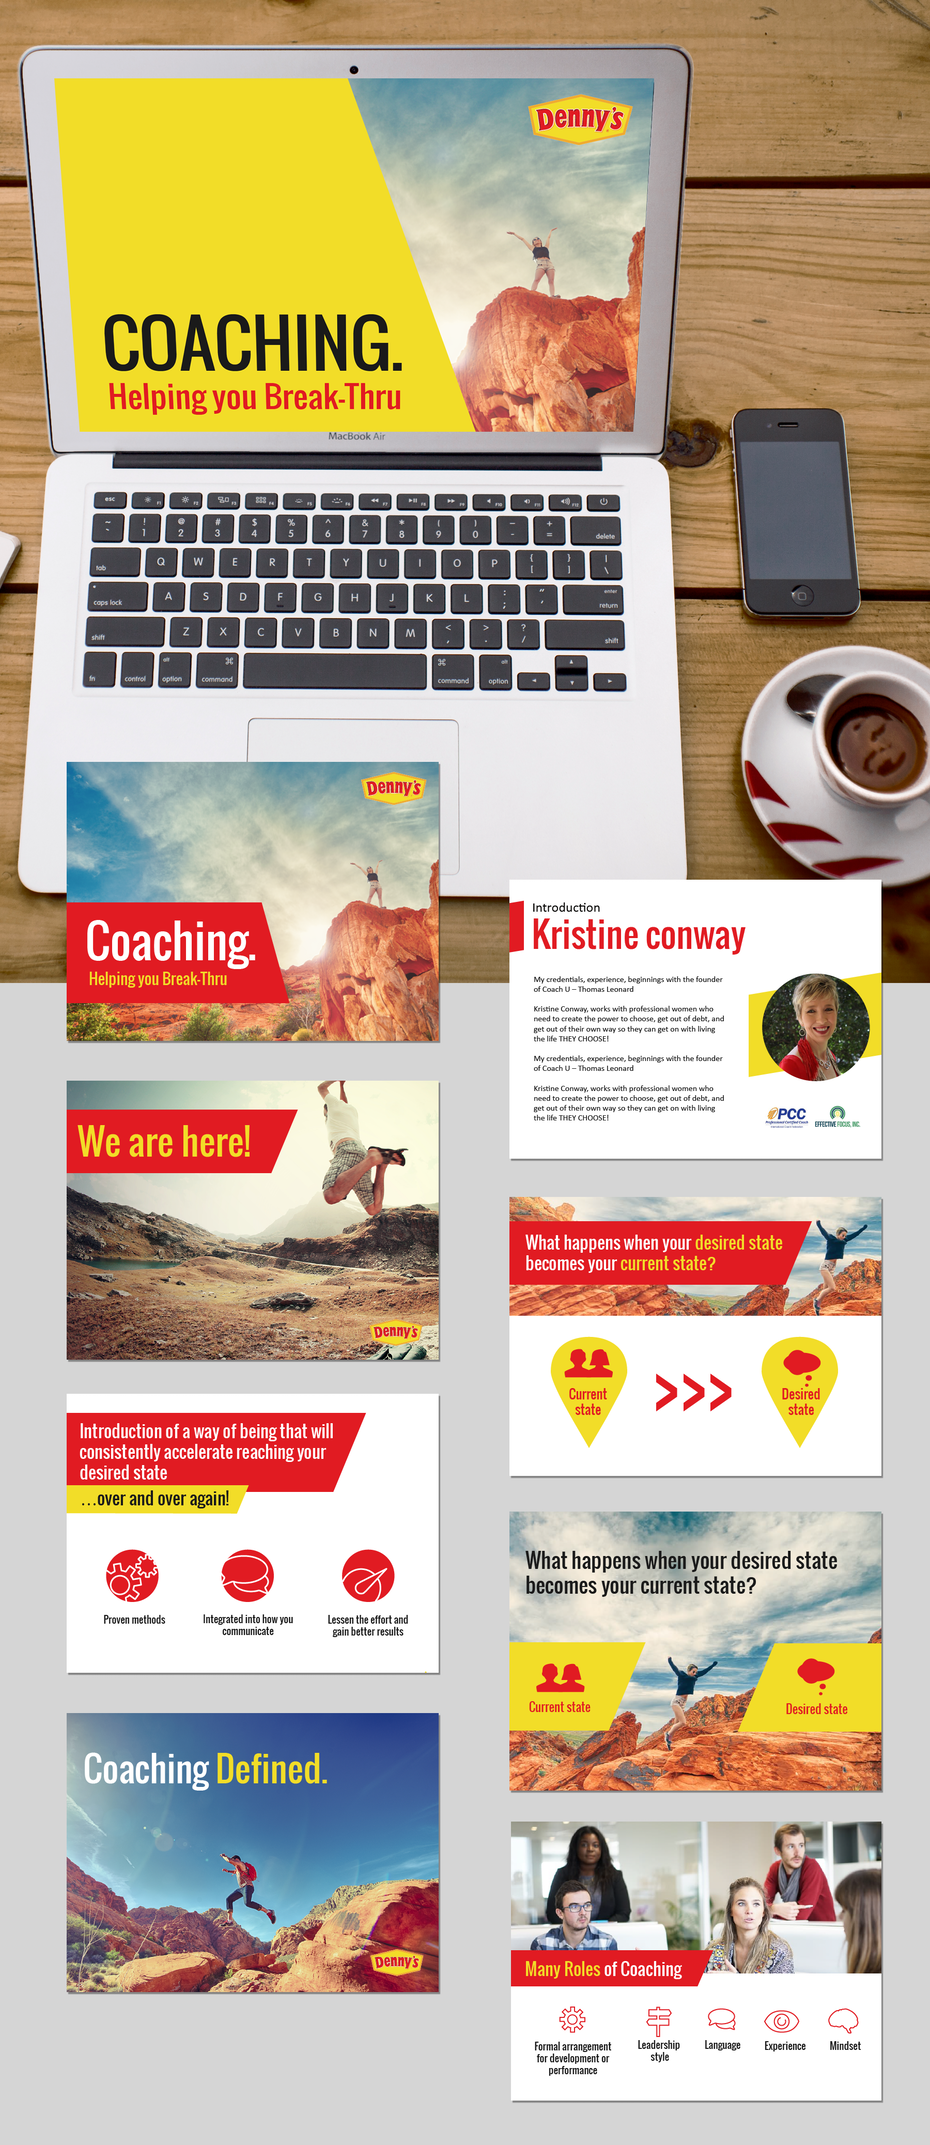 POWERPOINT PRESENTATION WITH YELLOW AND RED ACCENT COLORS